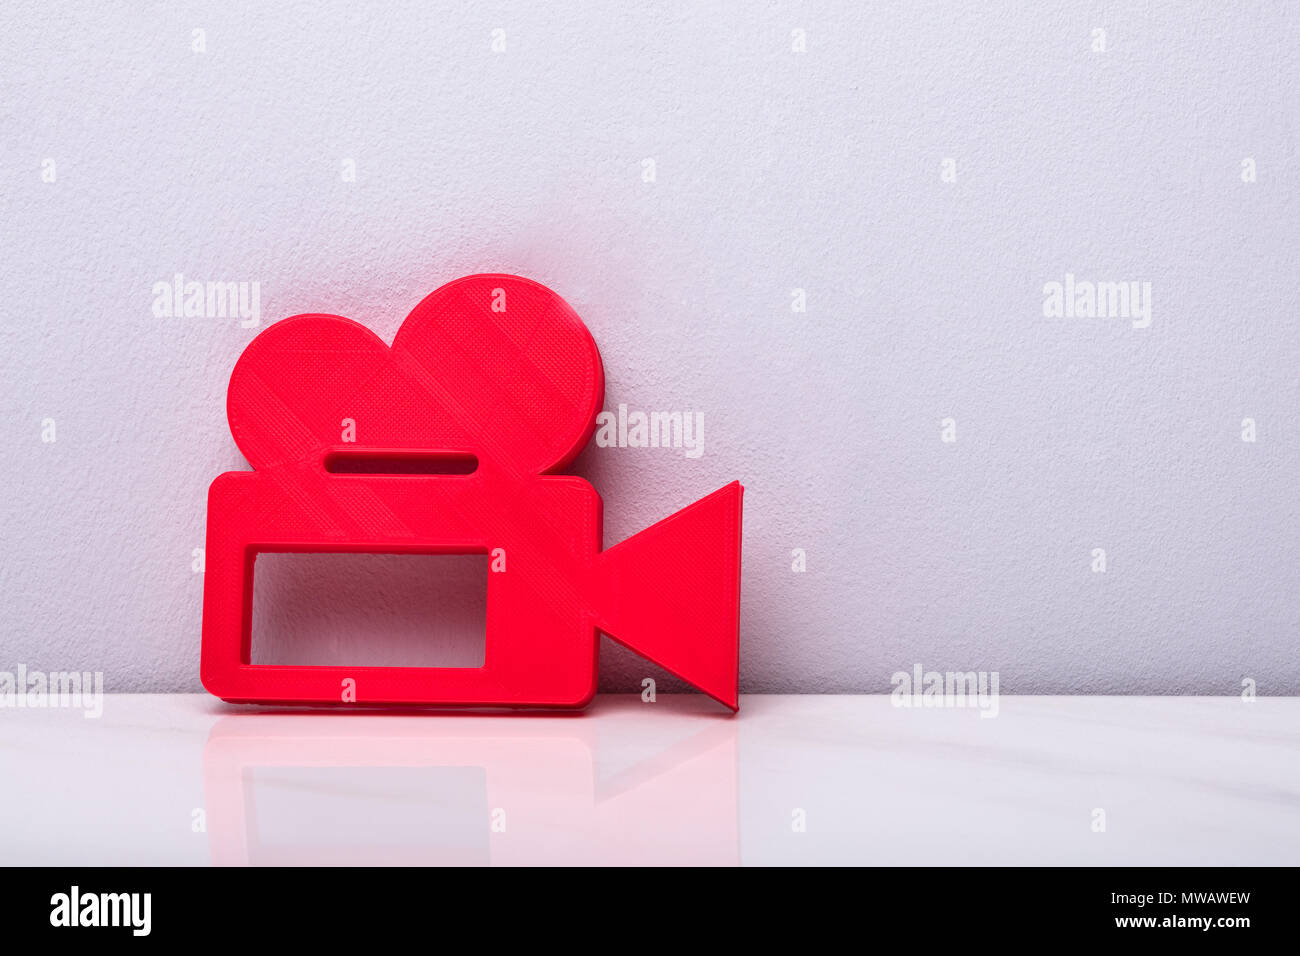 Red Video Camera Sign Against White Background - Stock Image